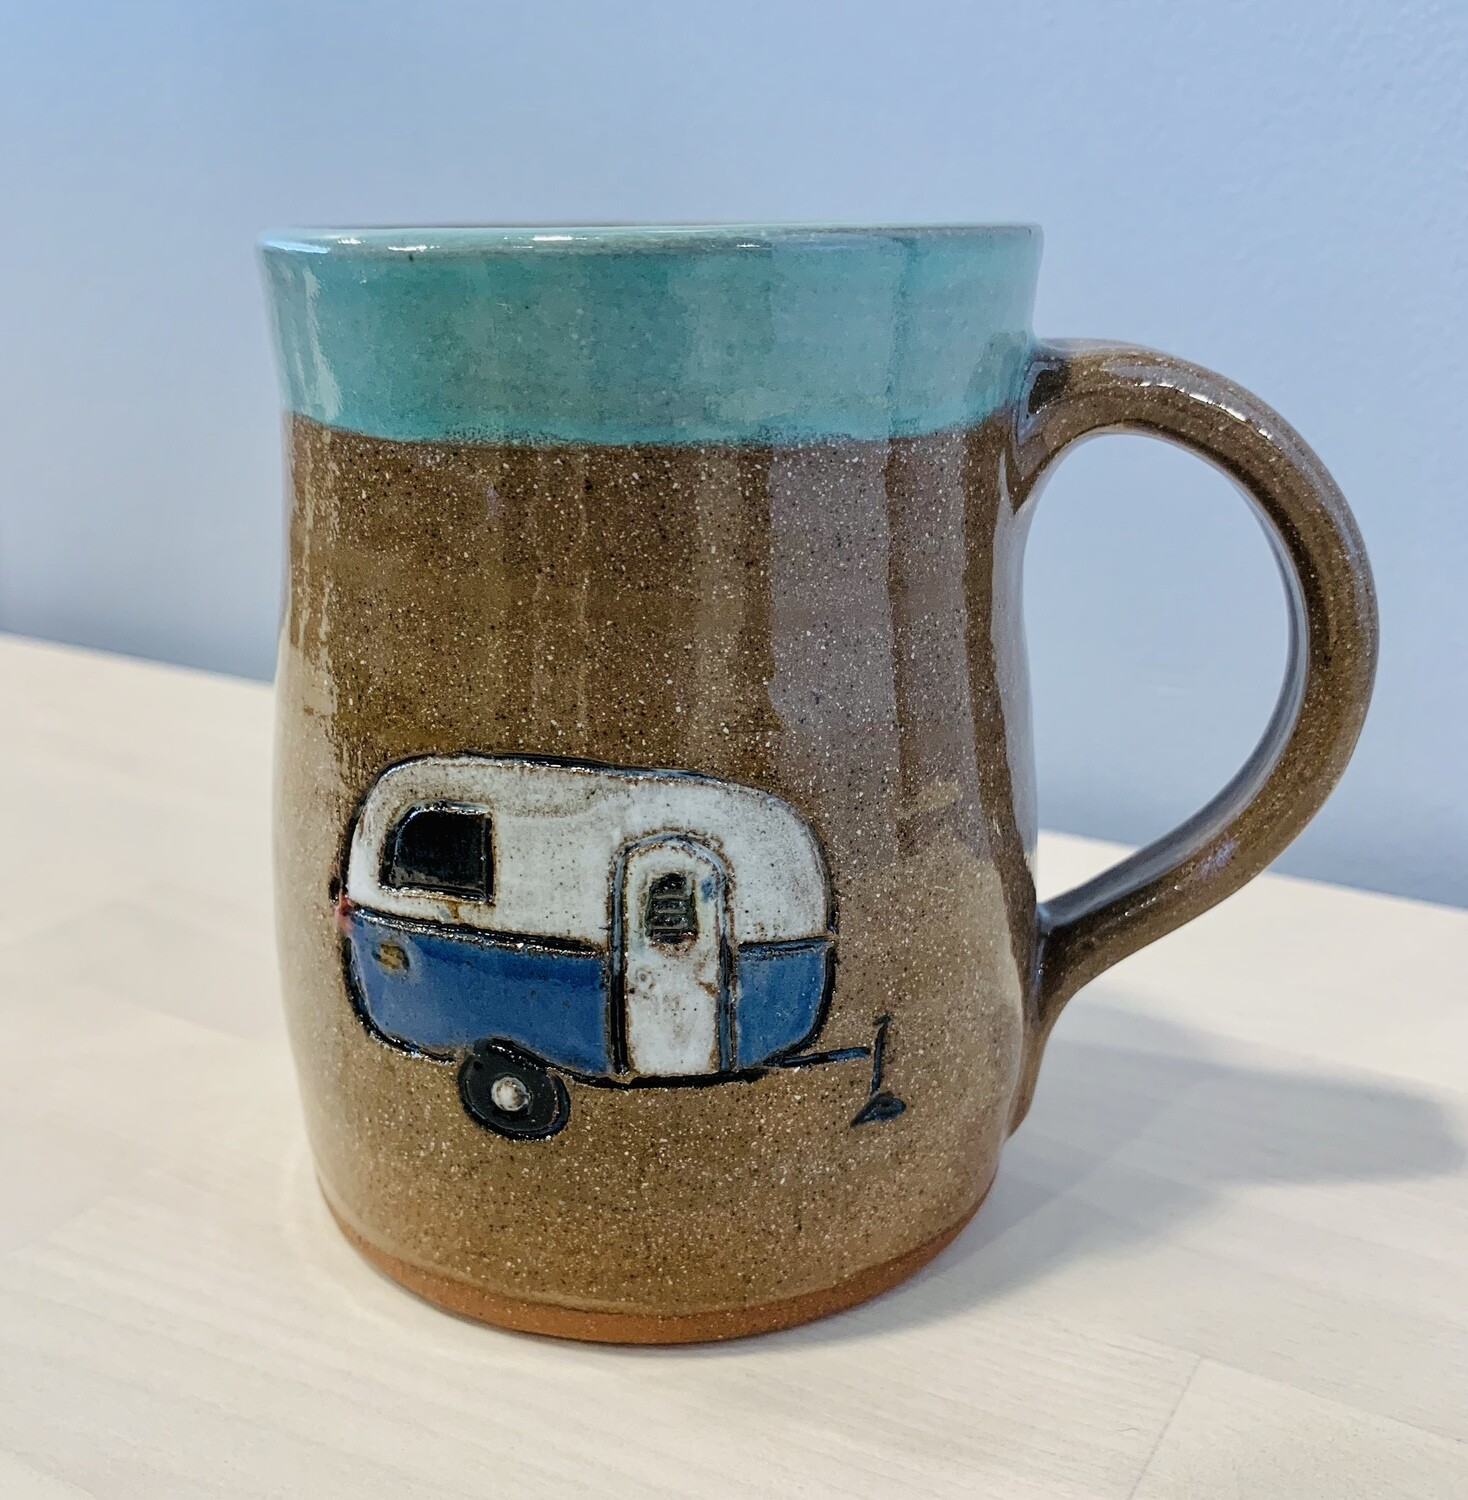 Blue Camper Mug - White Nest